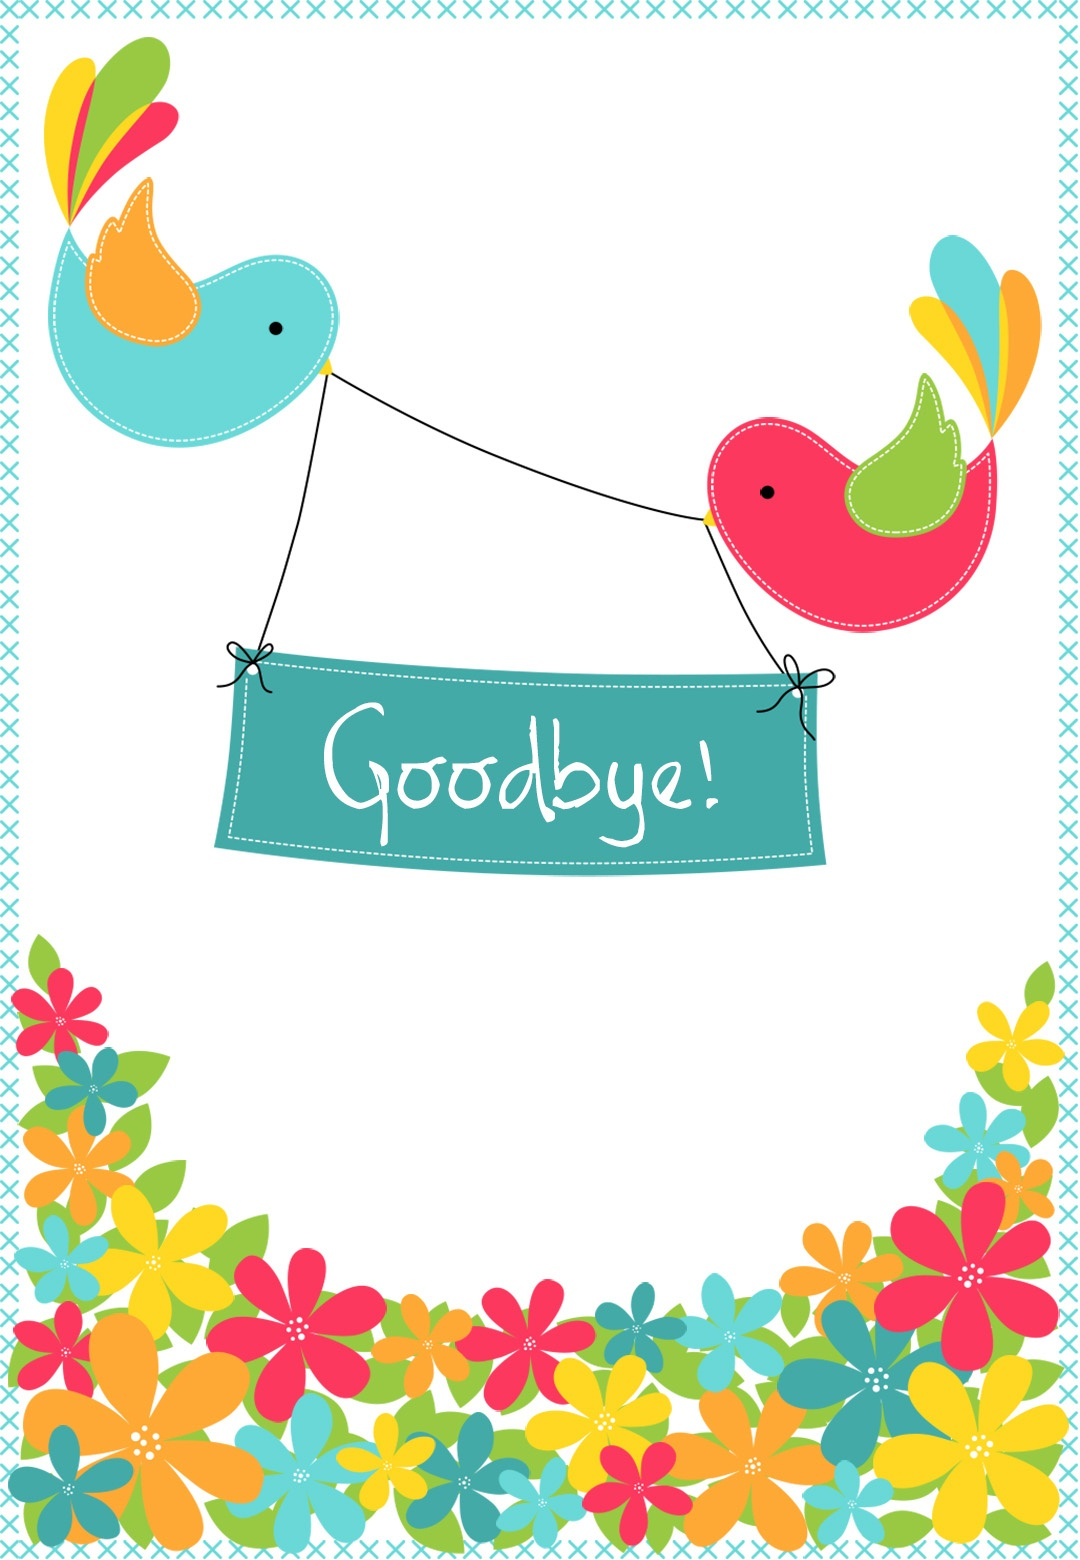 Goodbye From Your Colleagues - Good Luck Card (Free) | Greetings Island - Free Printable Good Luck Cards